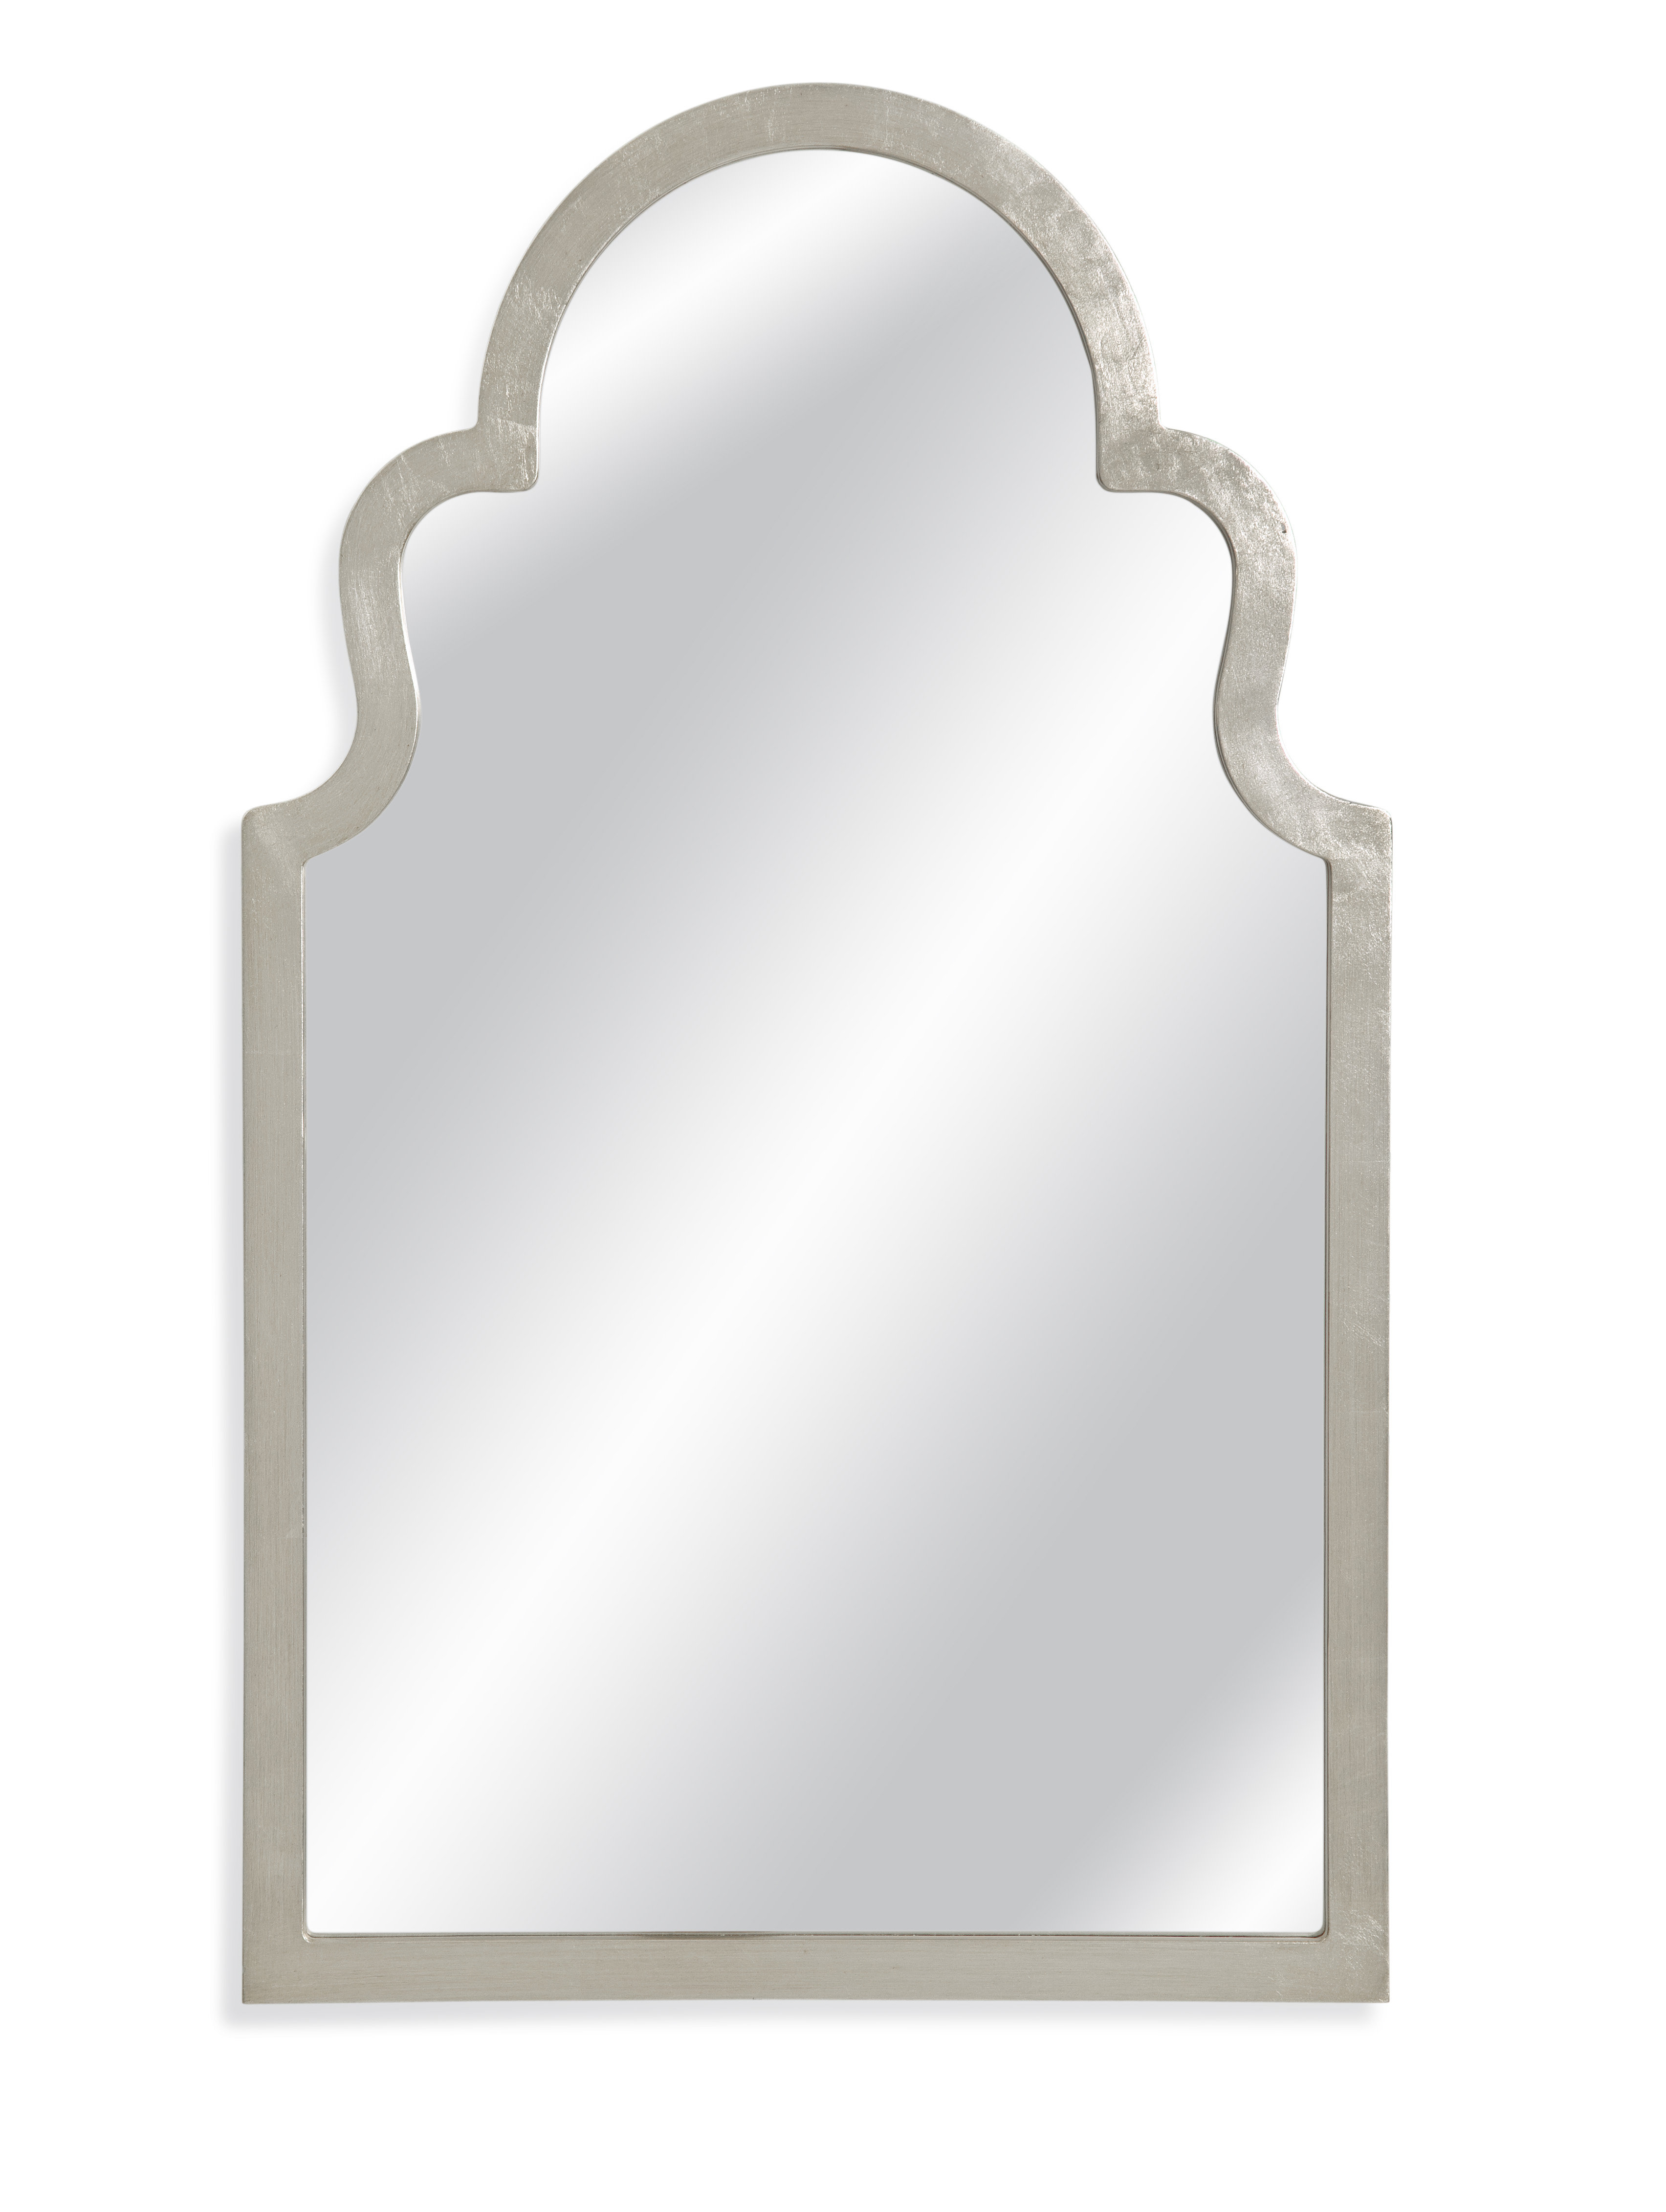 Arch Top Vertical Wall Mirror Regarding Dariel Tall Arched Scalloped Wall Mirrors (View 8 of 20)